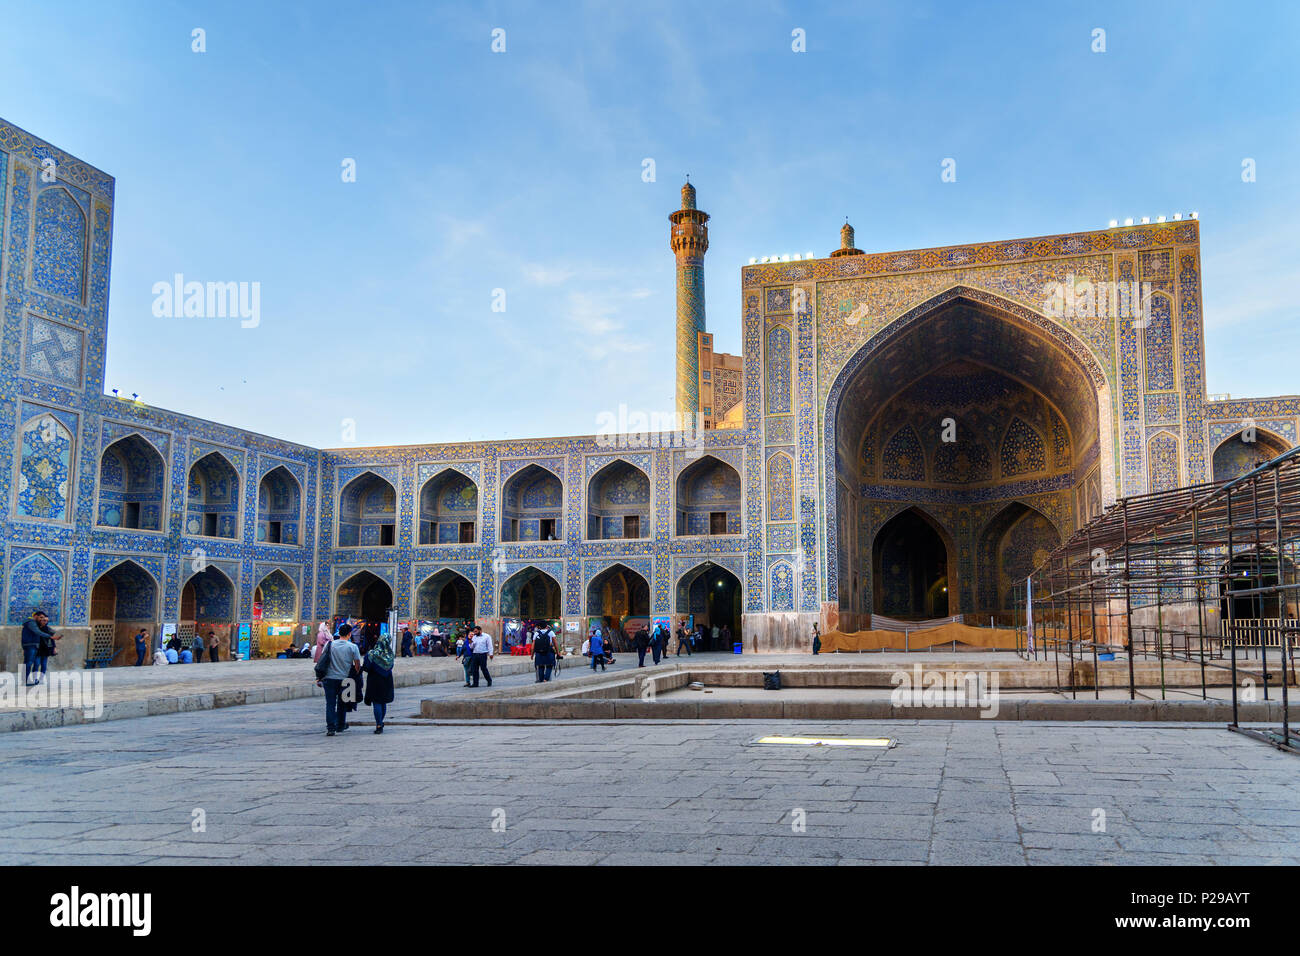 Isfahan, Iran - March 21, 2018: Yard of Shah Mosque or Imam Mosque - Stock Image